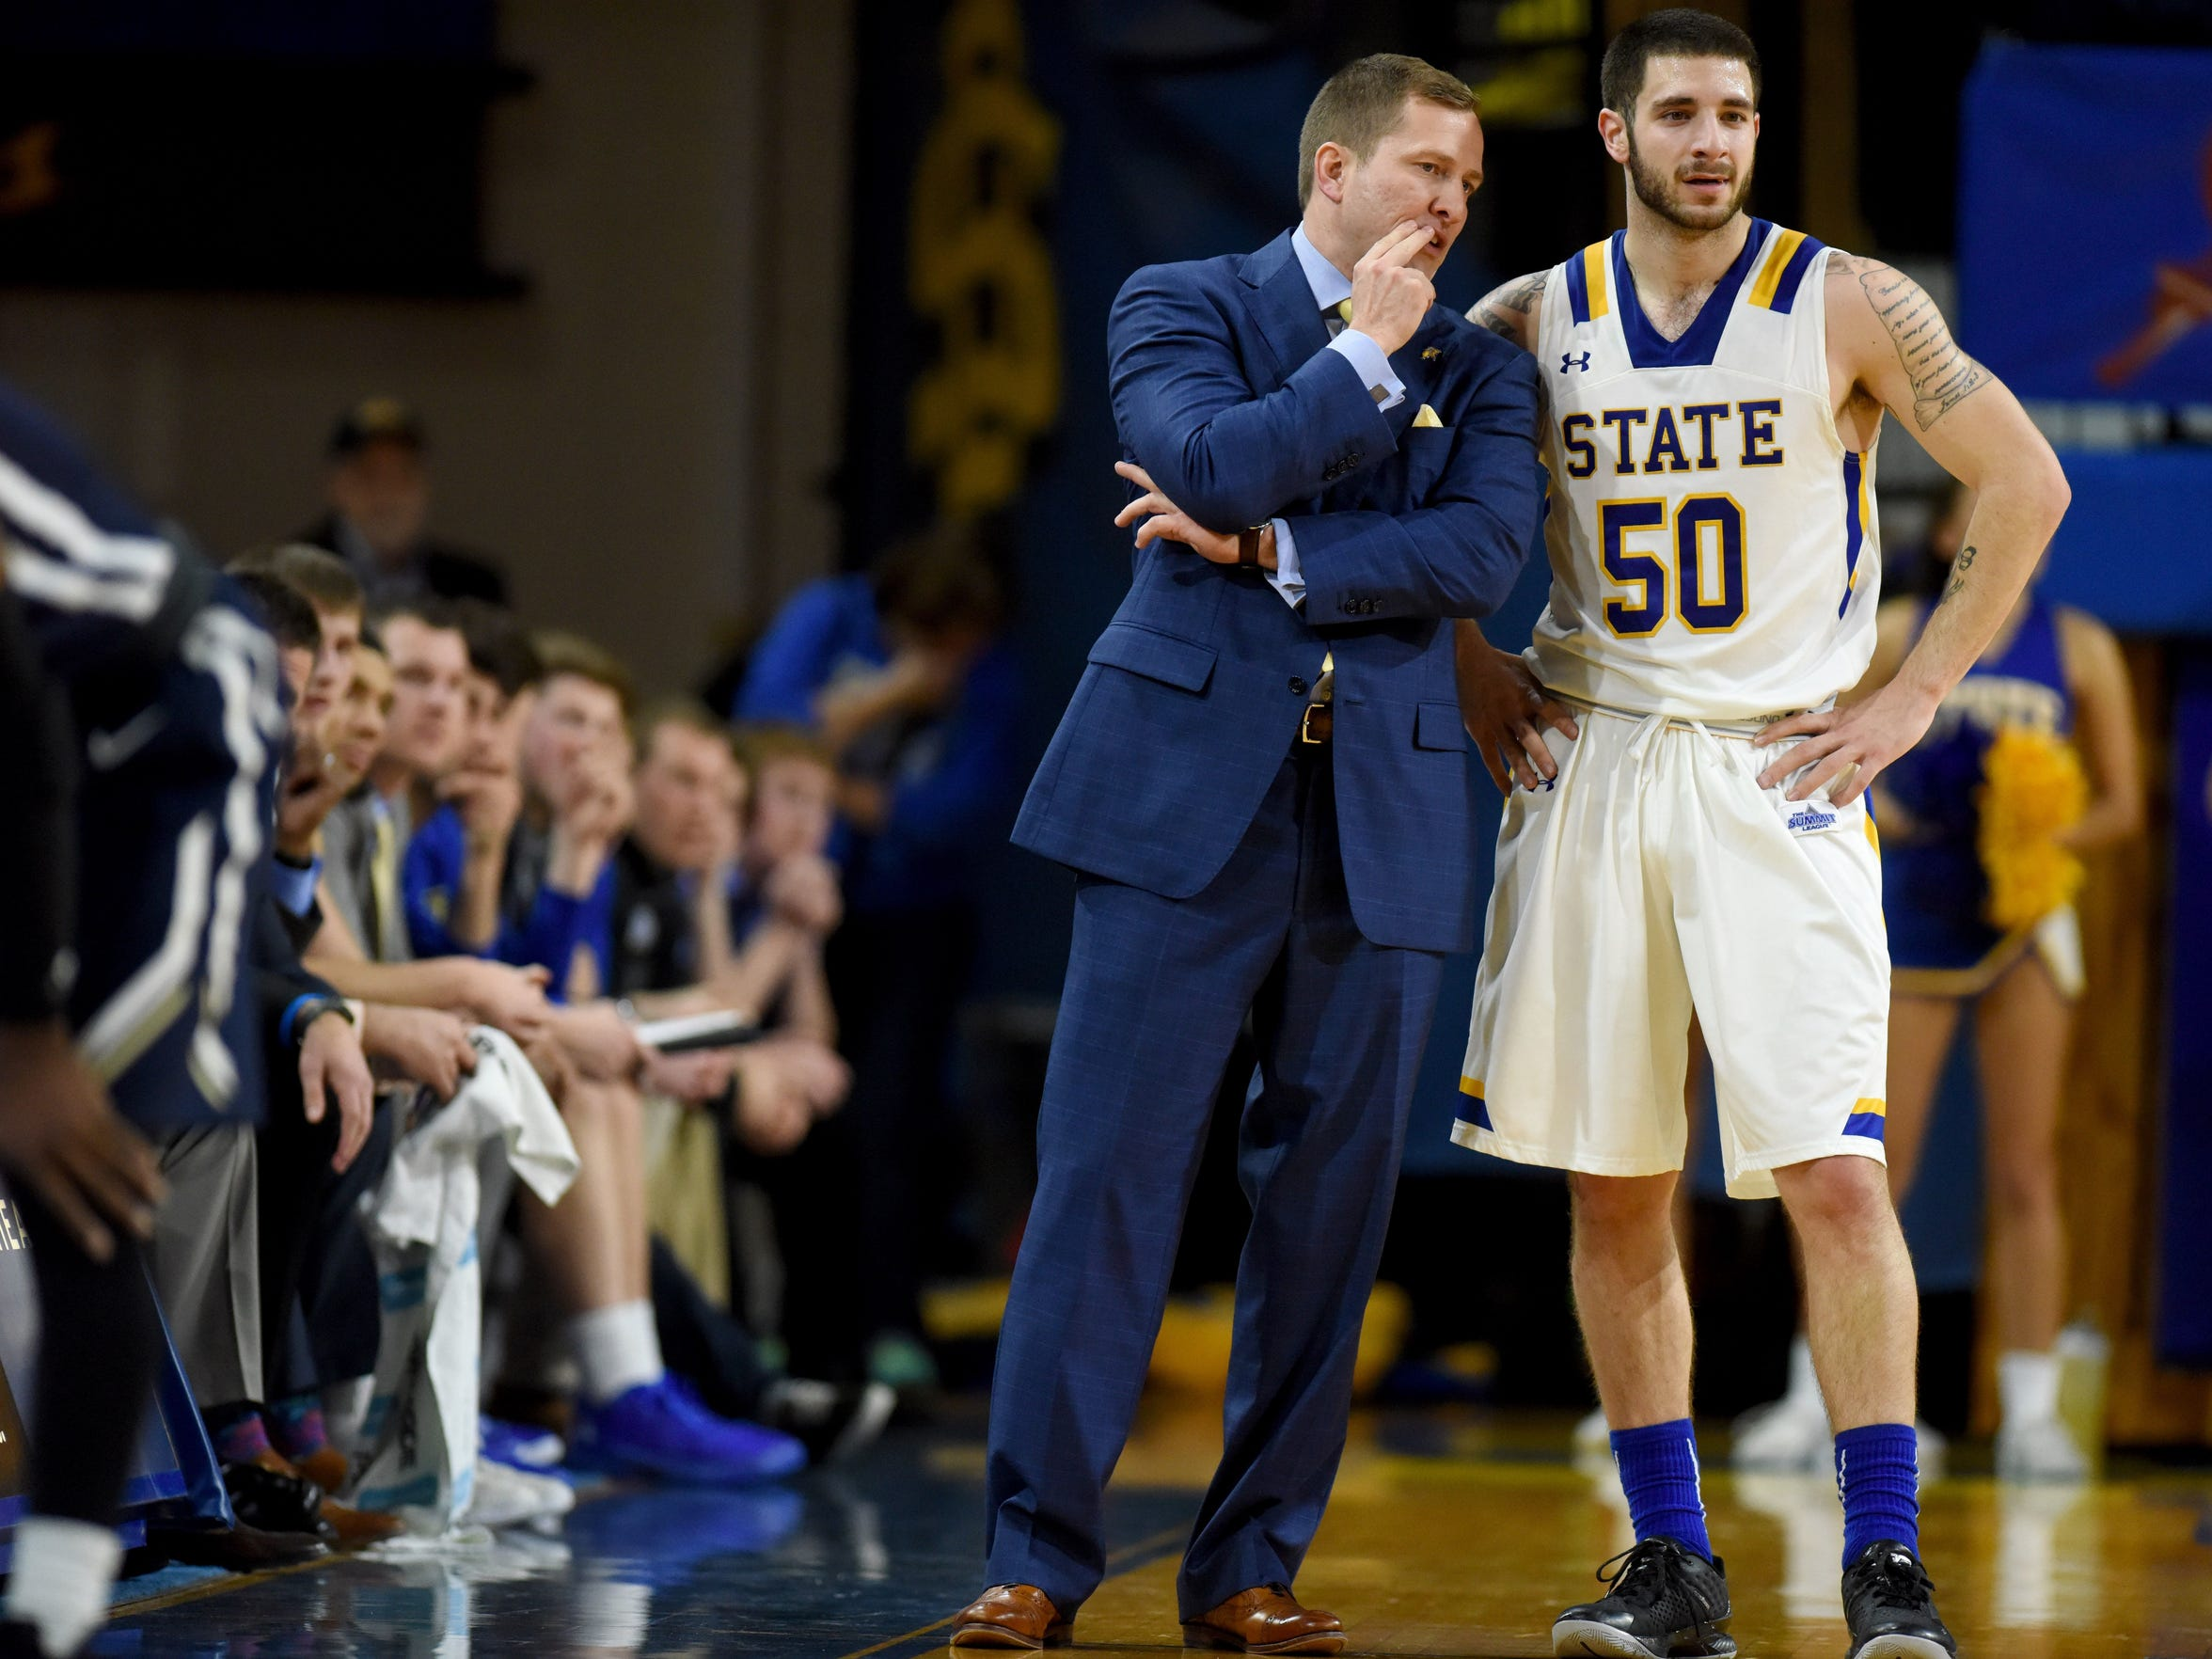 SDSU head men's basketball coach T.J. Otzelberger talks with Michael Orris during their game against Oral Roberts last year at Frost Arena in Brookings.